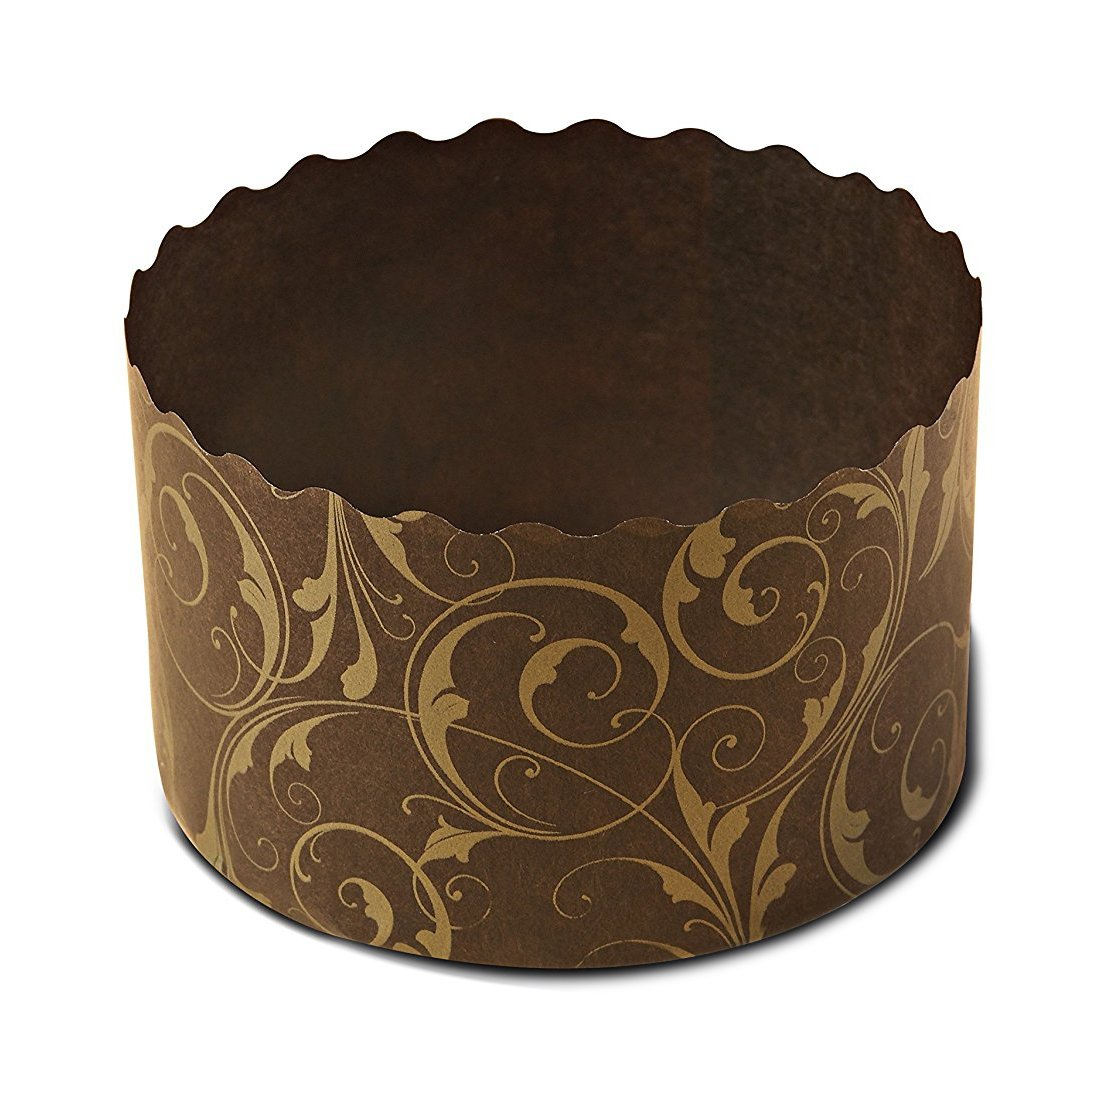 Baking Pan , Cupcakes , Perfect for Muffins, Cupcake Souffle, Panettone etc Size W 2.7 in X H 2 in PA7050FG (1000)